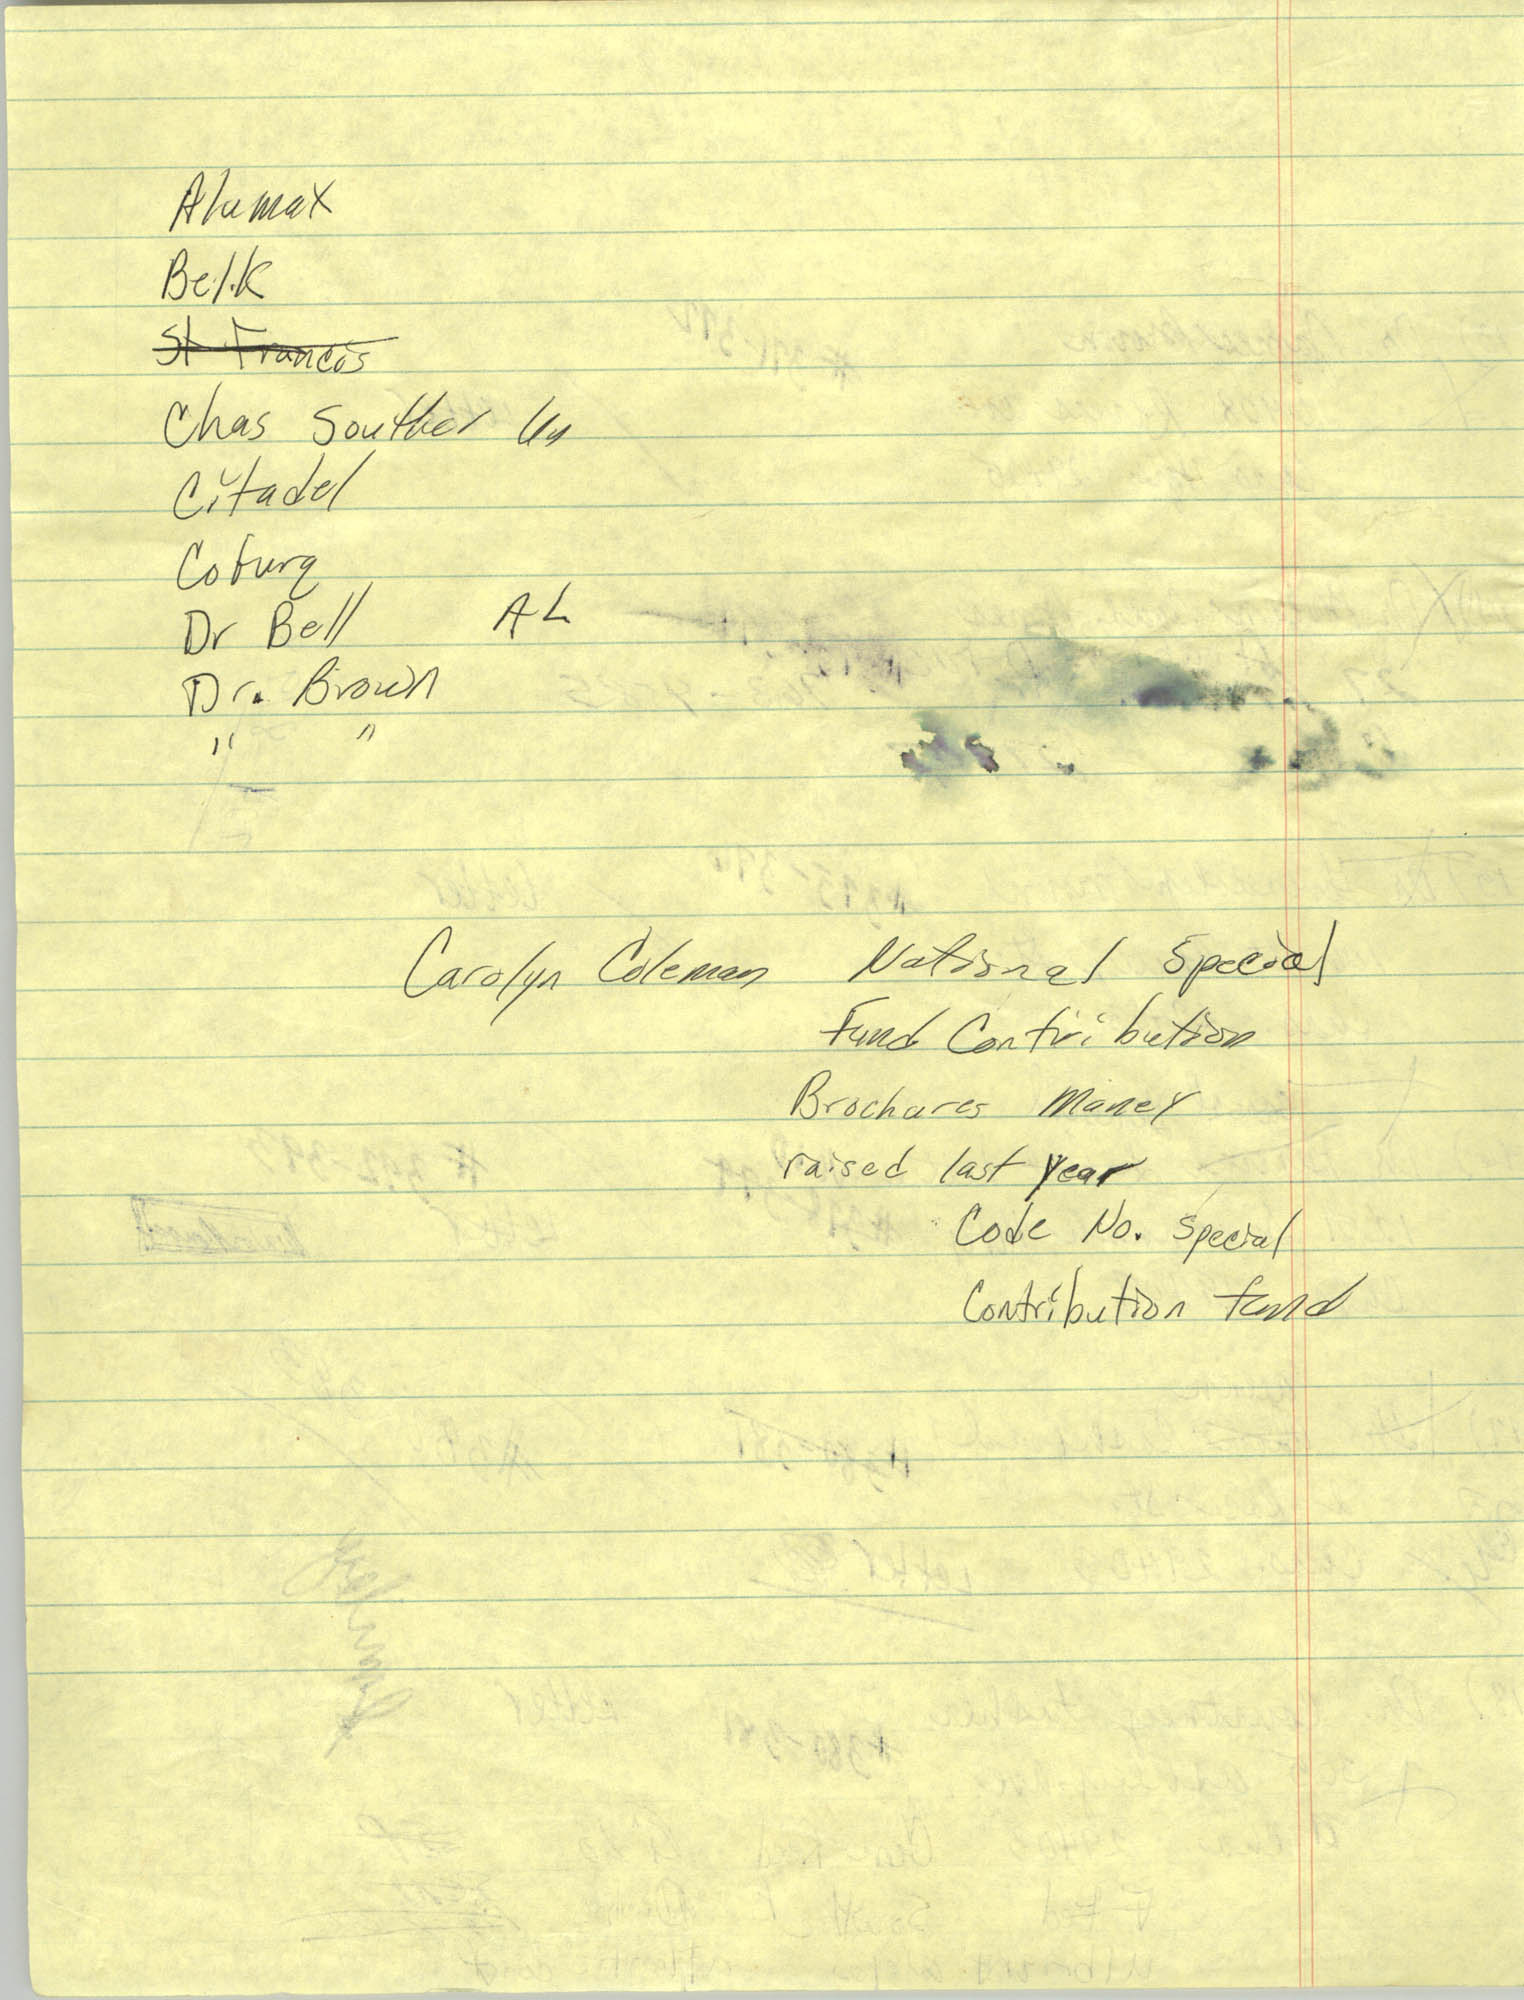 Handwritten Addresses for Tickets, Page 9